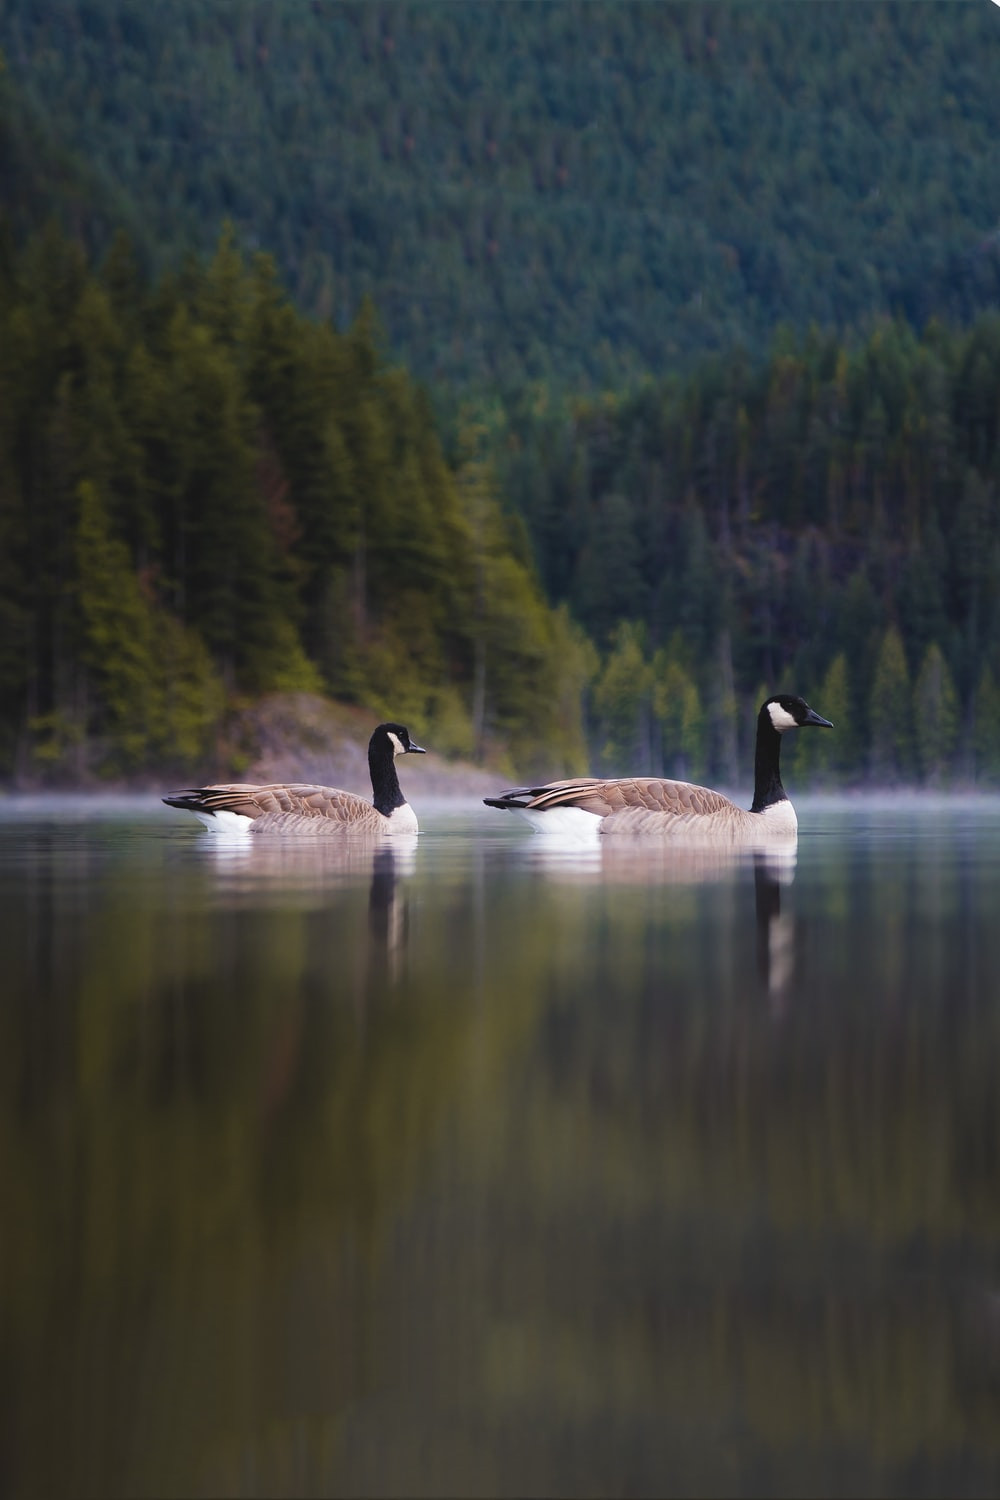 two Canada geese on body of water during daytime